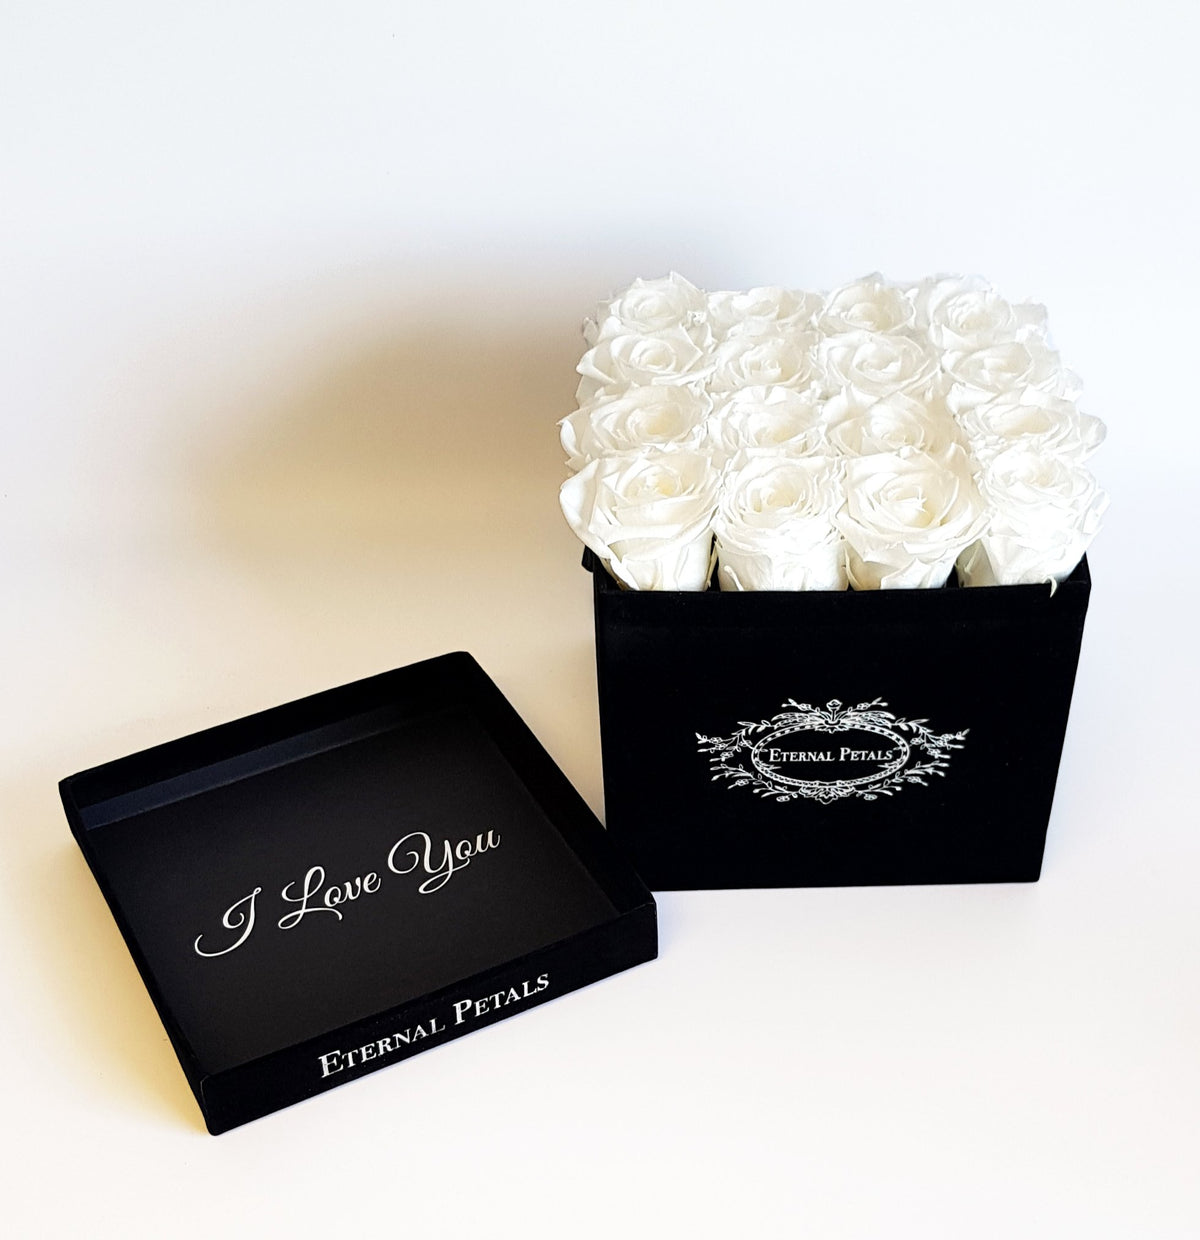 4 Ways to Personalise Your Eternal Petals Infinity Roses Box